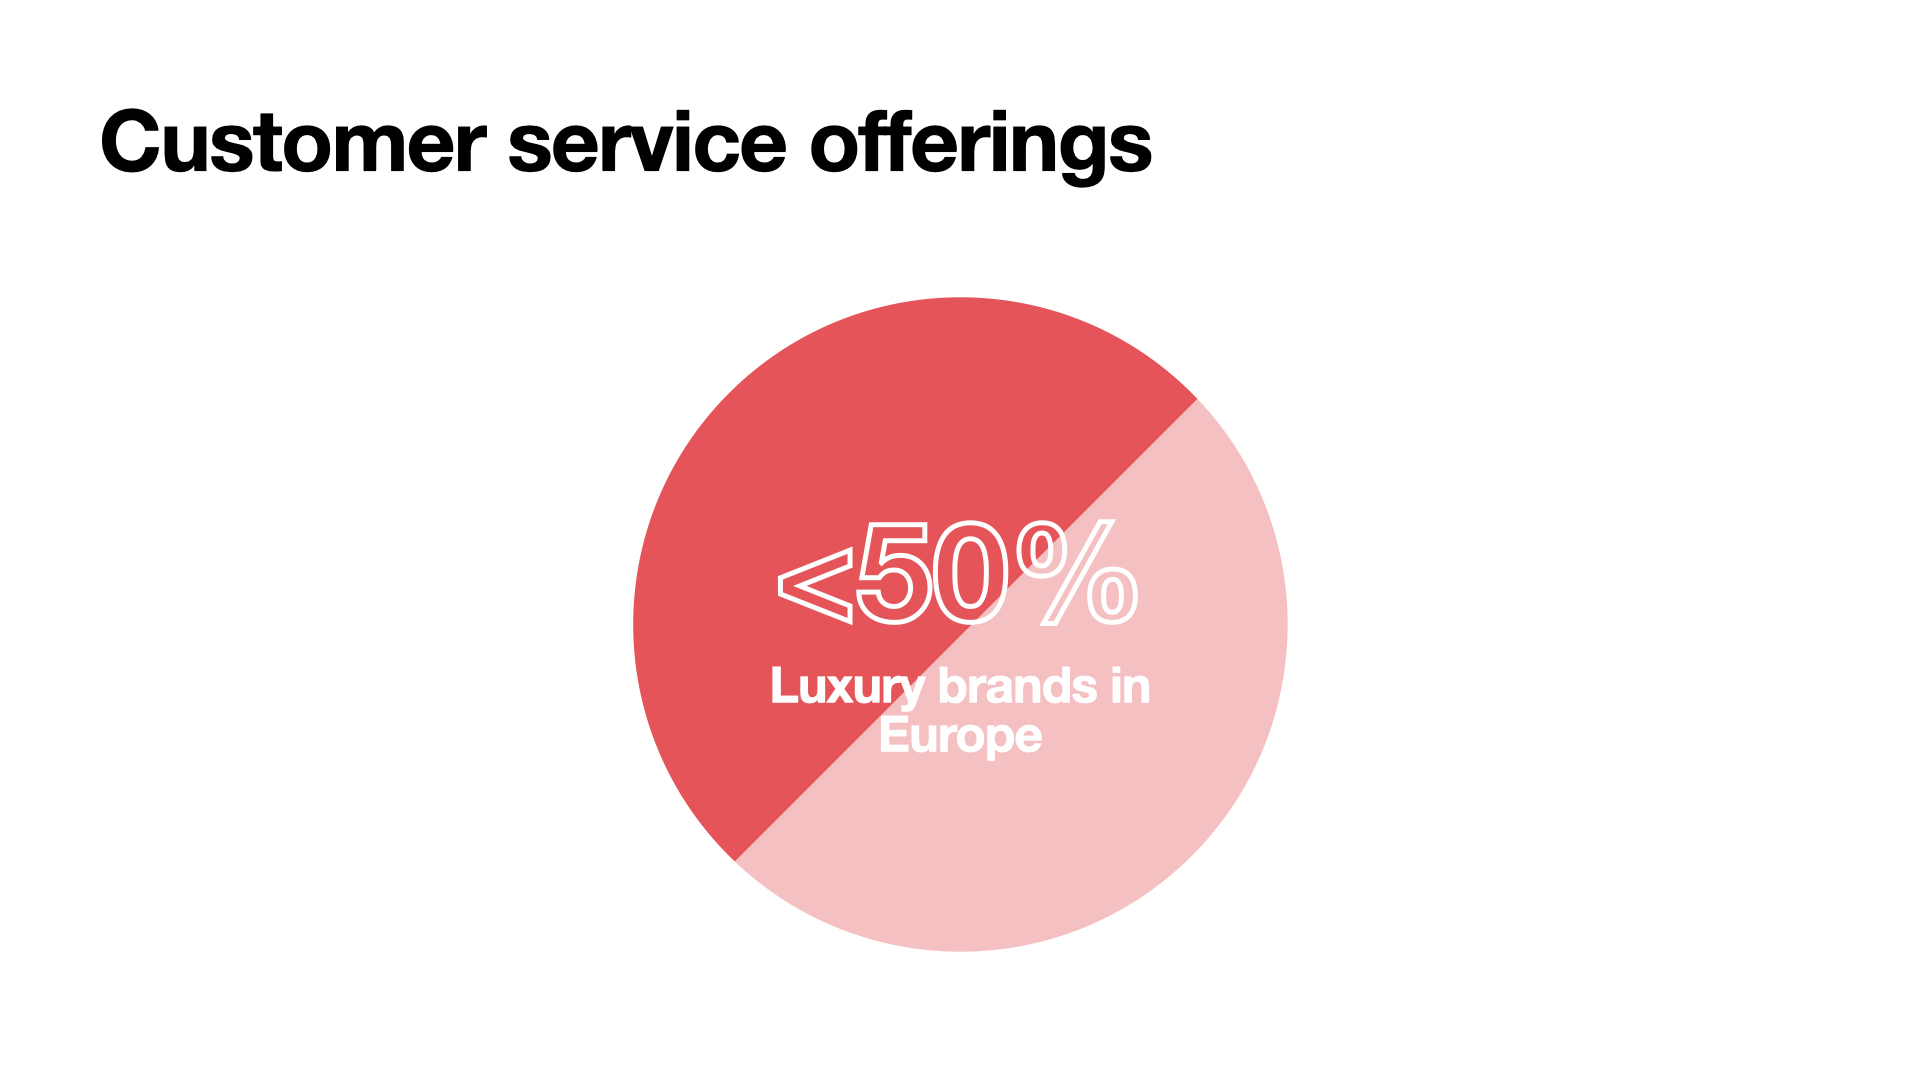 A luxury digital marketing agency's take on customer experience in 2021 (CX): Less than half of luxury brands in Europe have the same customer service offerings as their American counterparts.